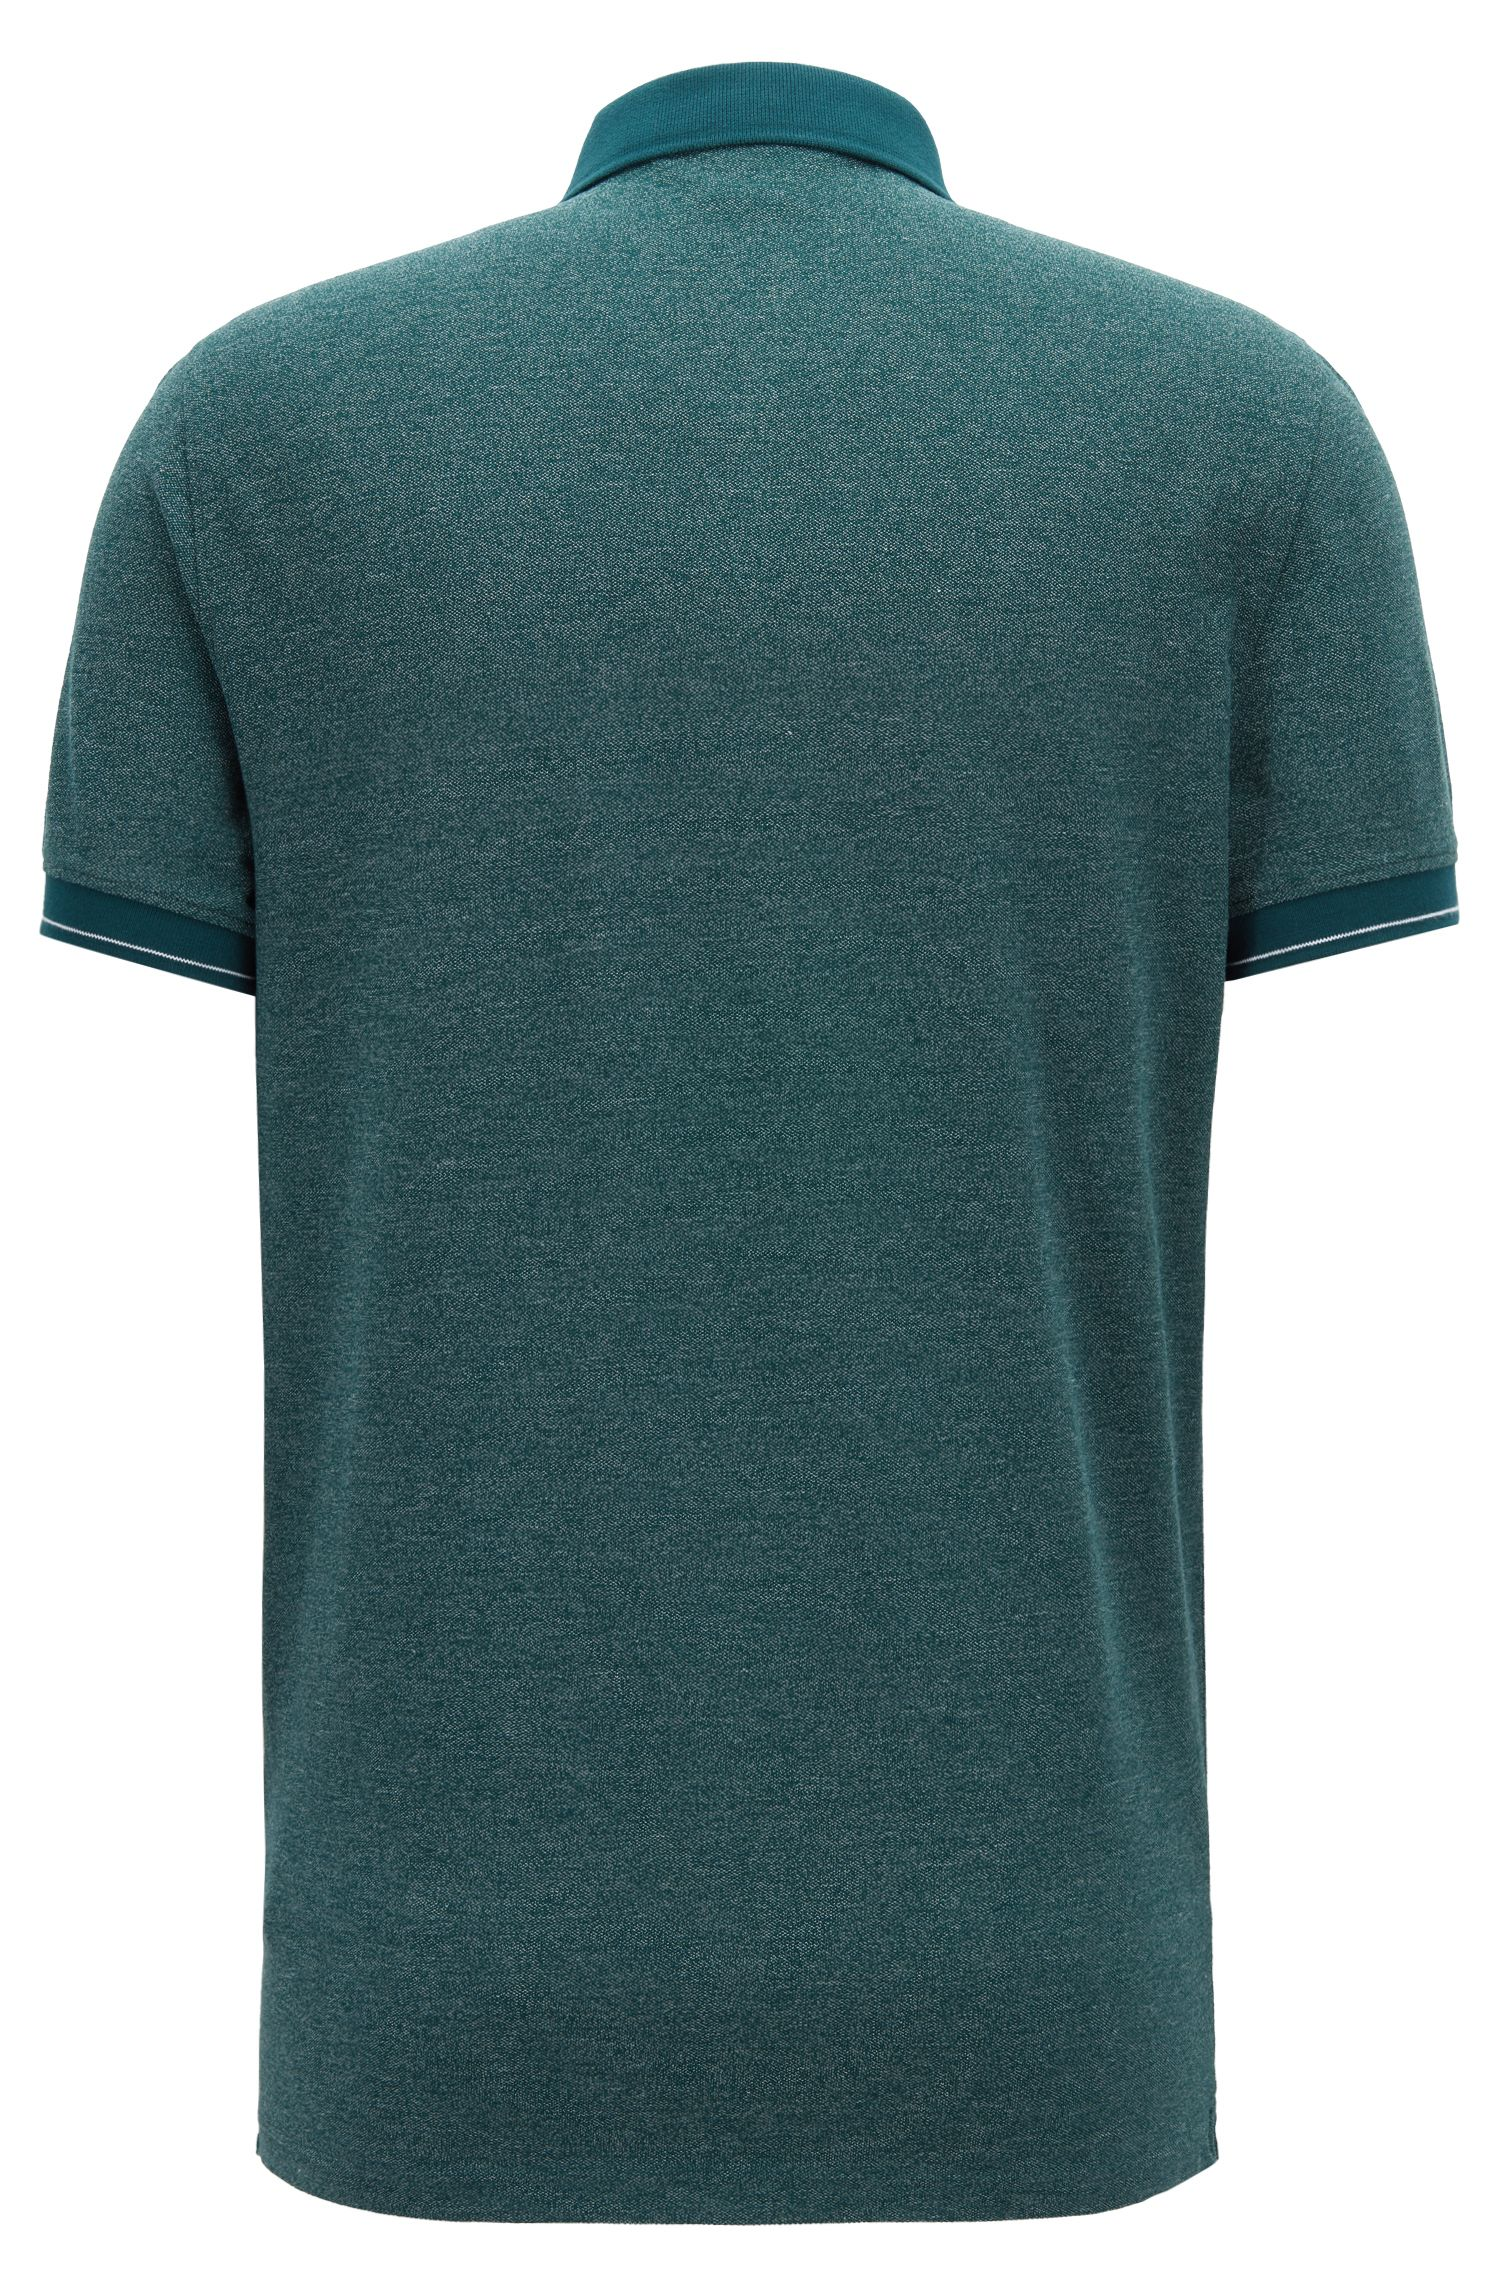 Denim-look polo shirt with contrast details, Dark Green